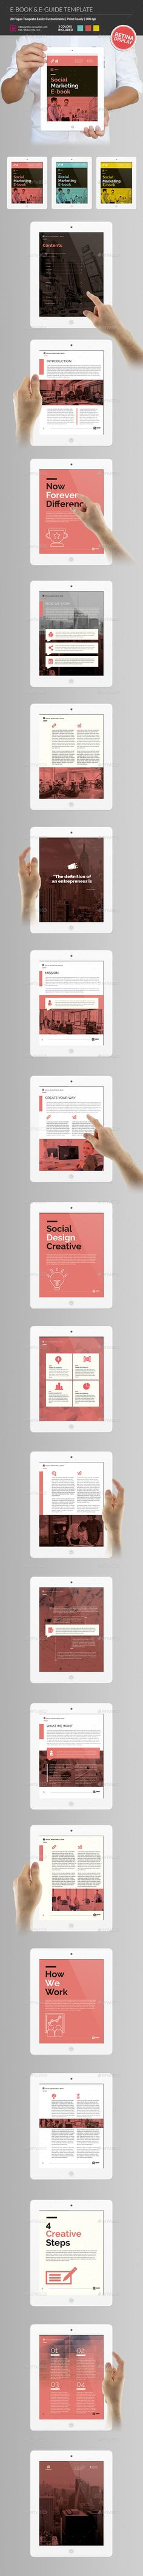 E-Book & E-Guide Template InDesign INDD. Download here: http://graphicriver.net/item/ebook-eguide/15930180?ref=ksioks